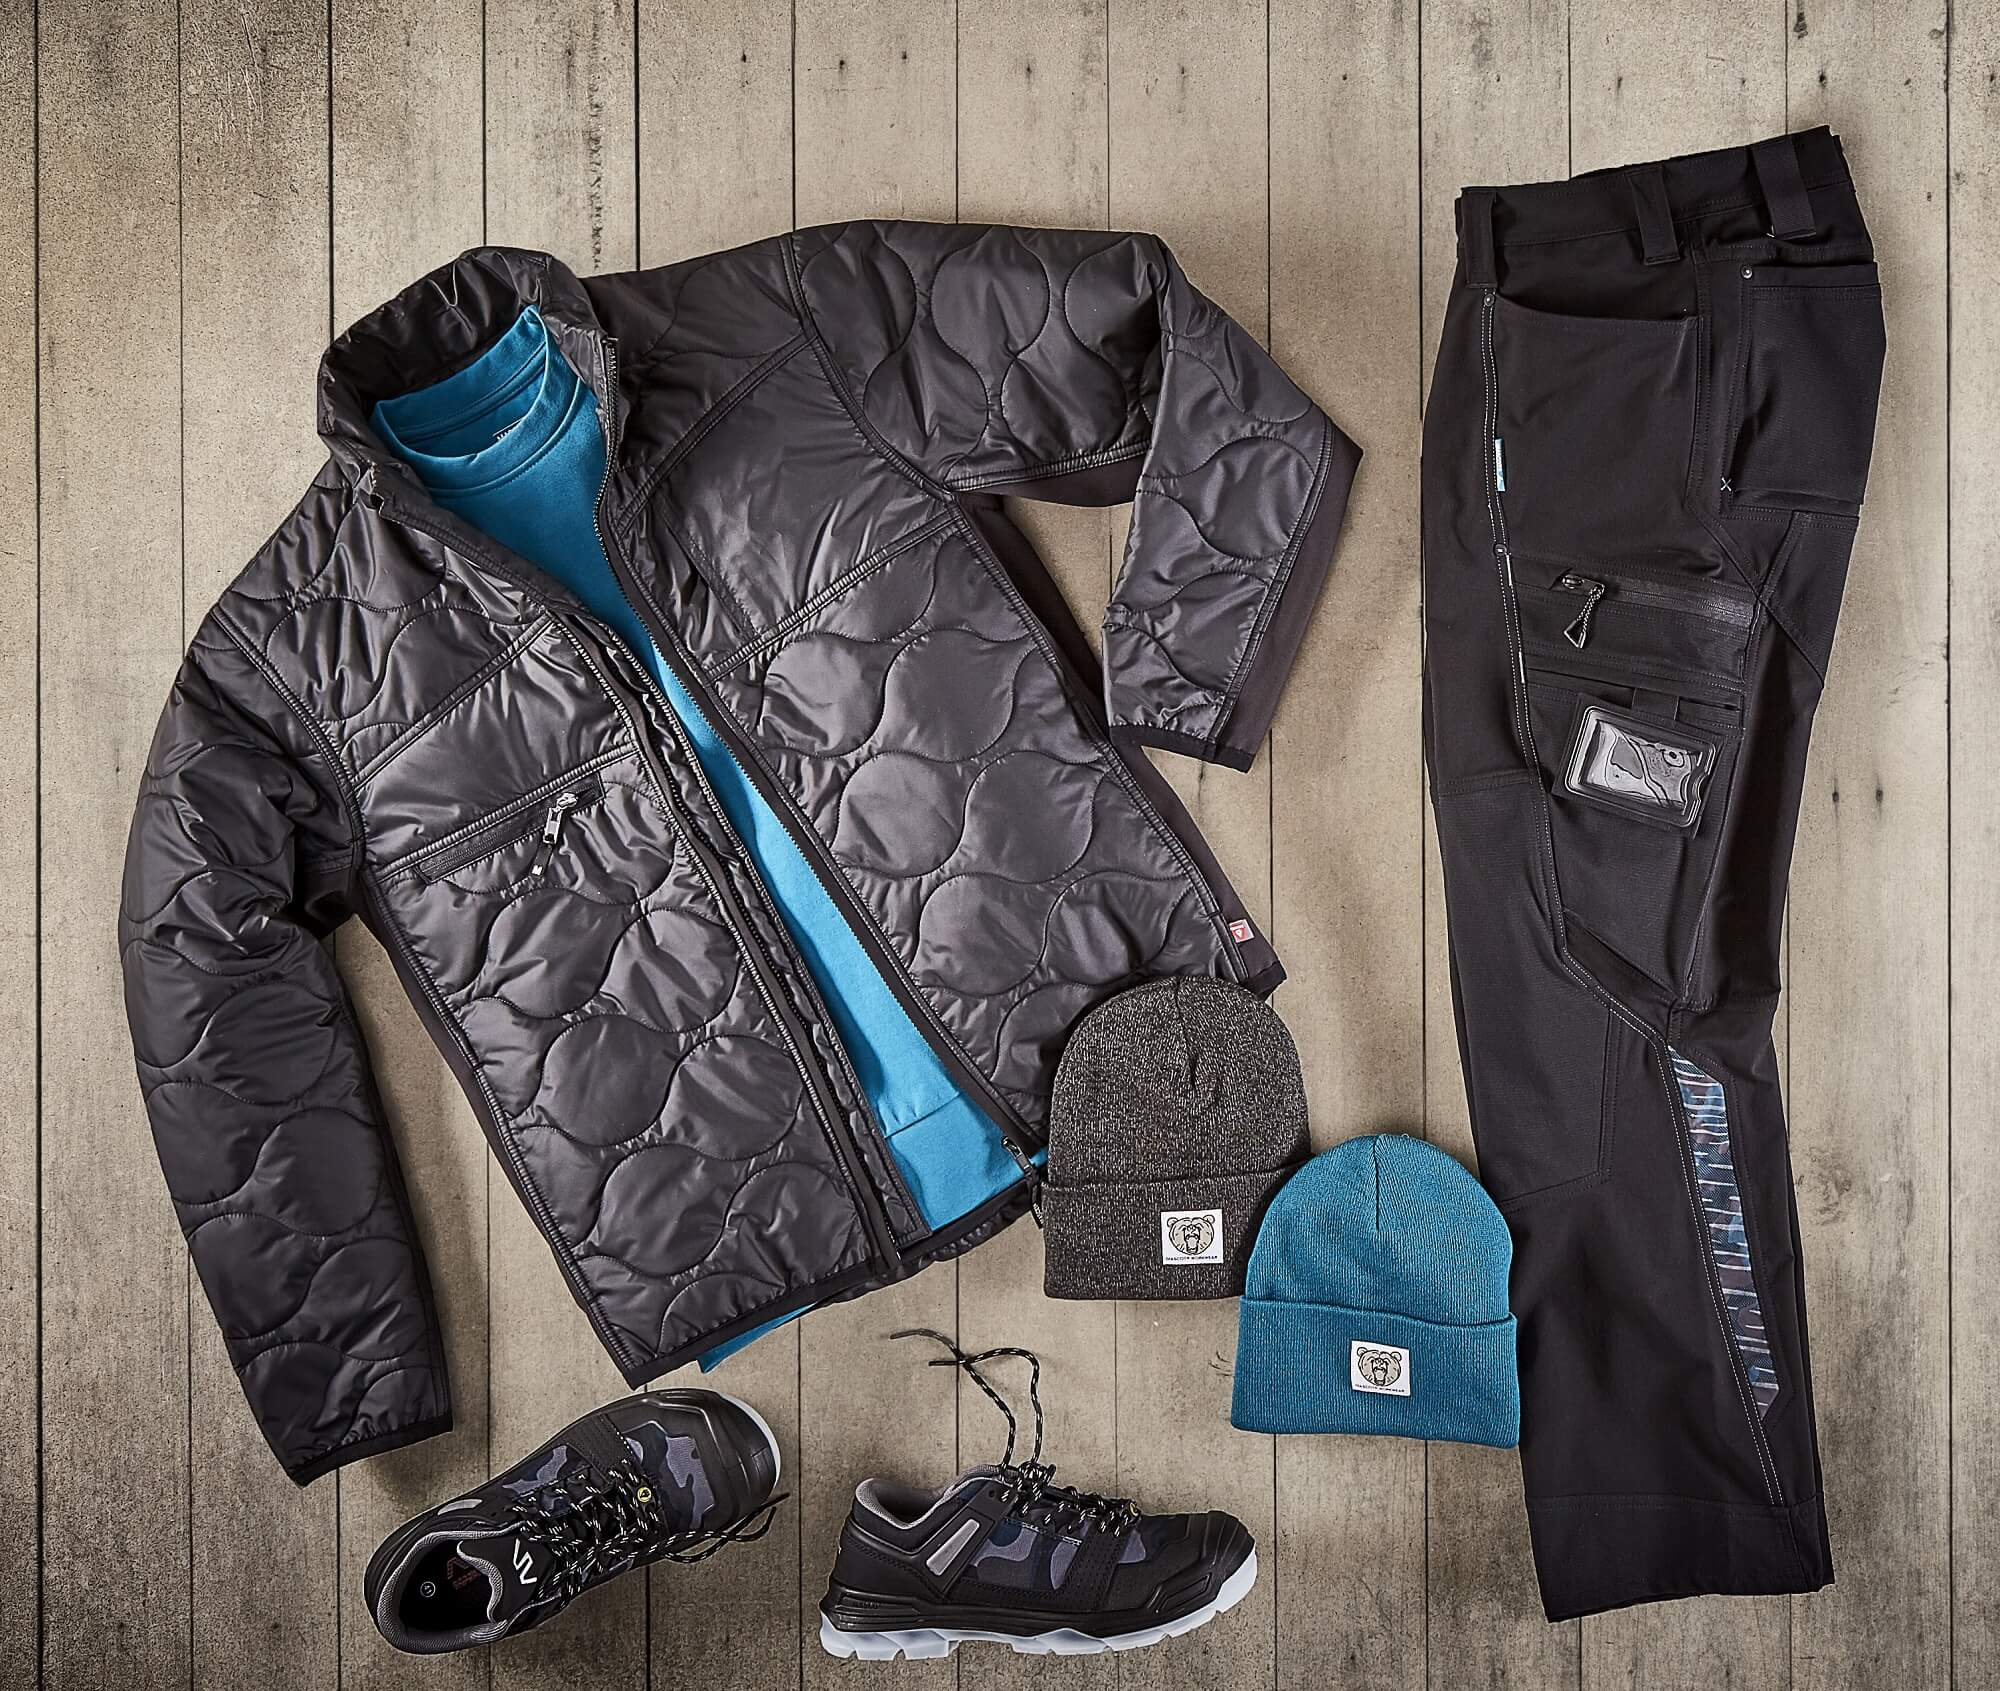 Thermal Jacket, STRETCH Pants & Knitted Hats - Black - Collage